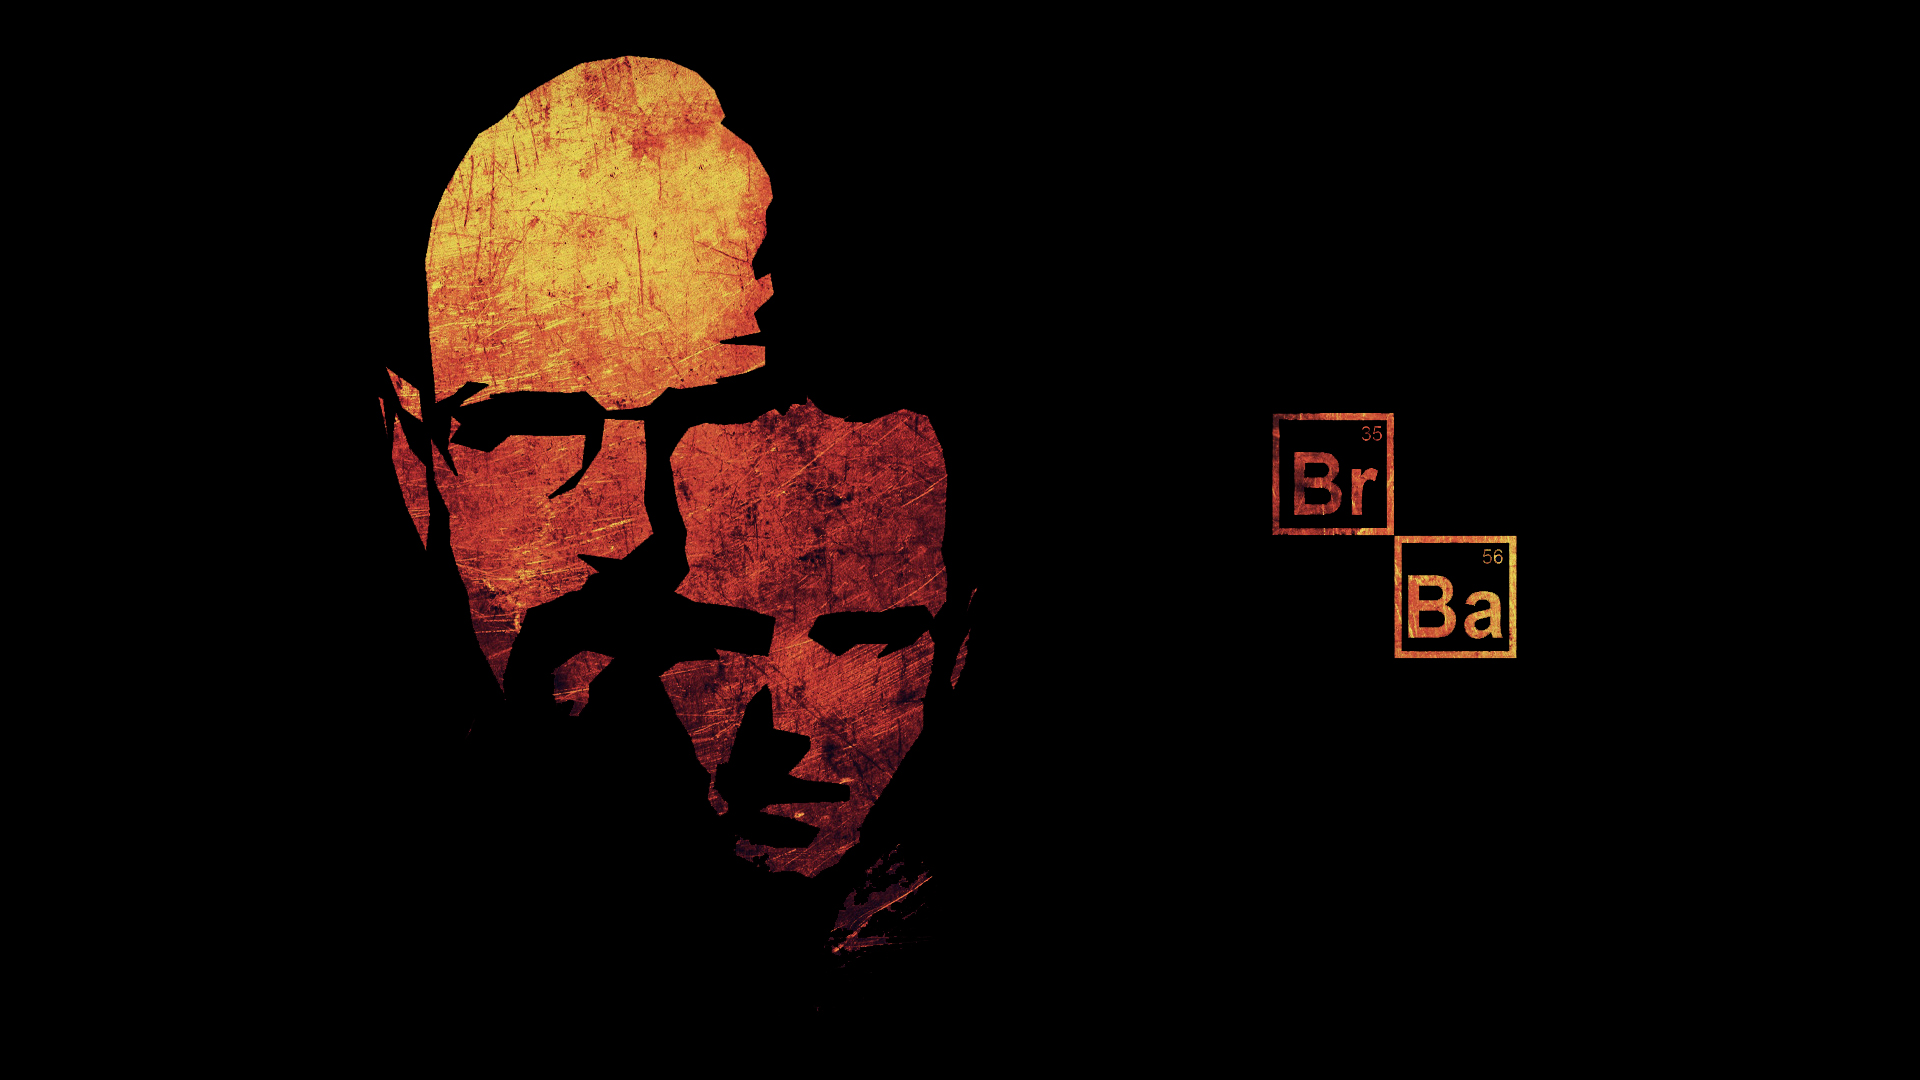 breaking-bad-wallpapers-hd-to-download-for-free_01